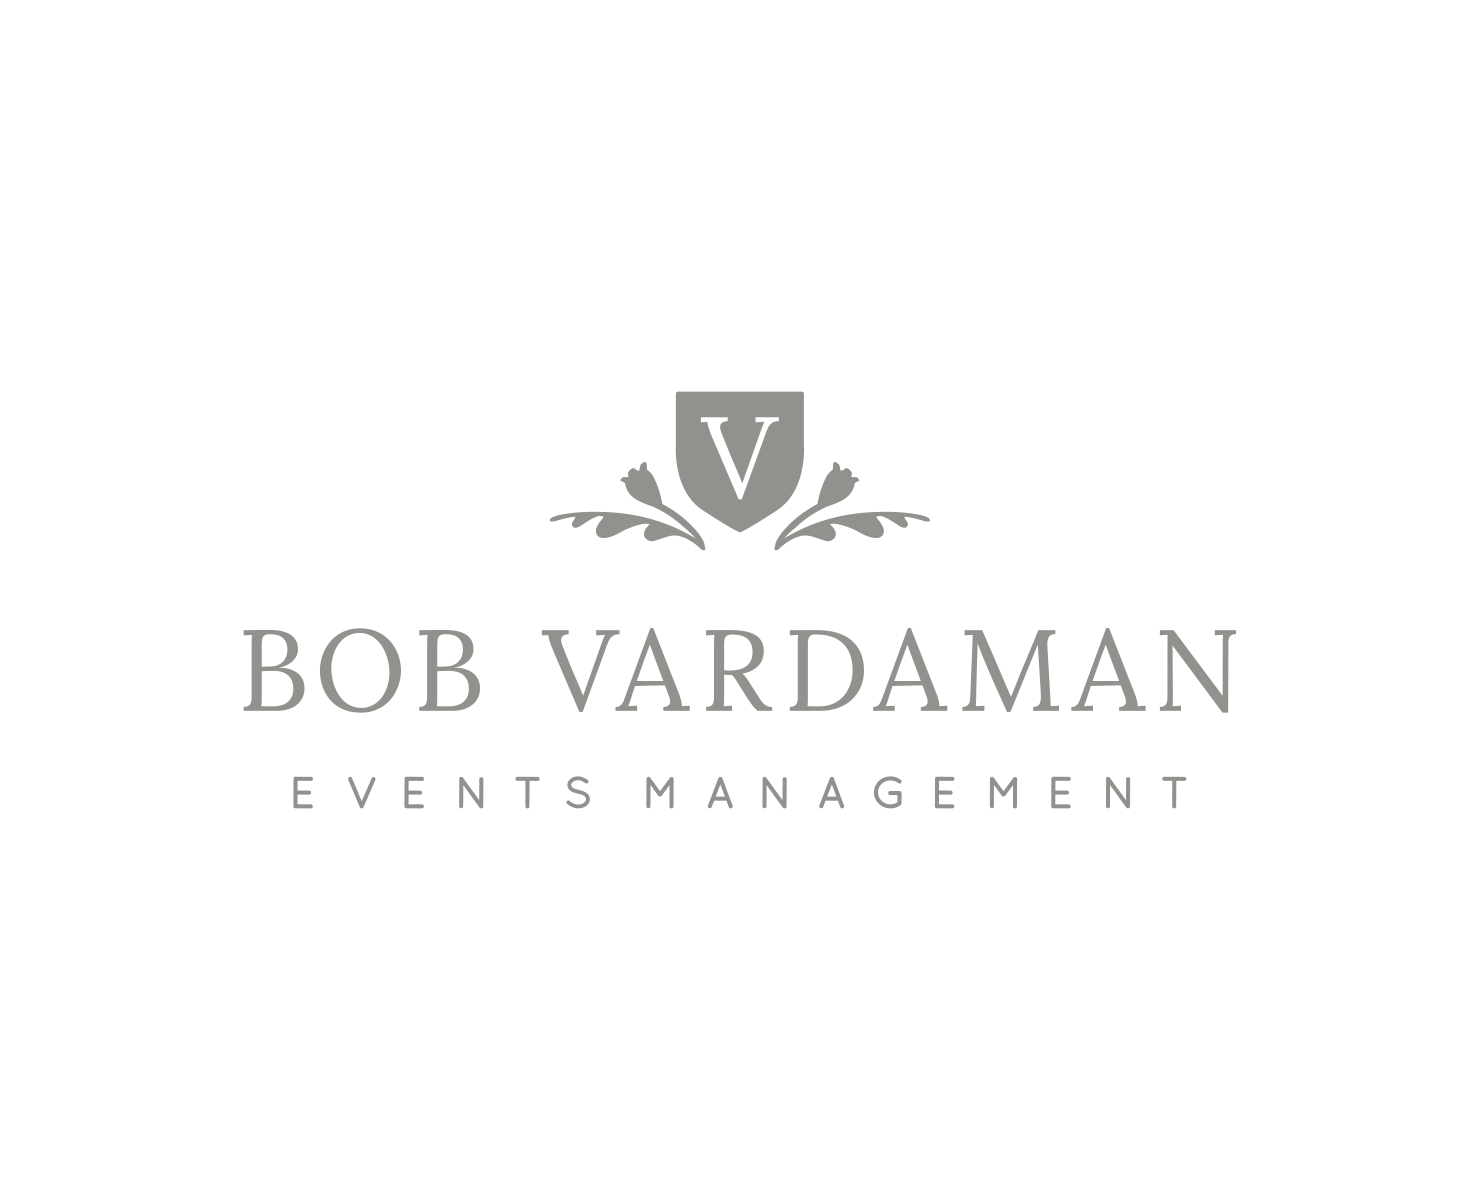 Bob Vardaman Events Management